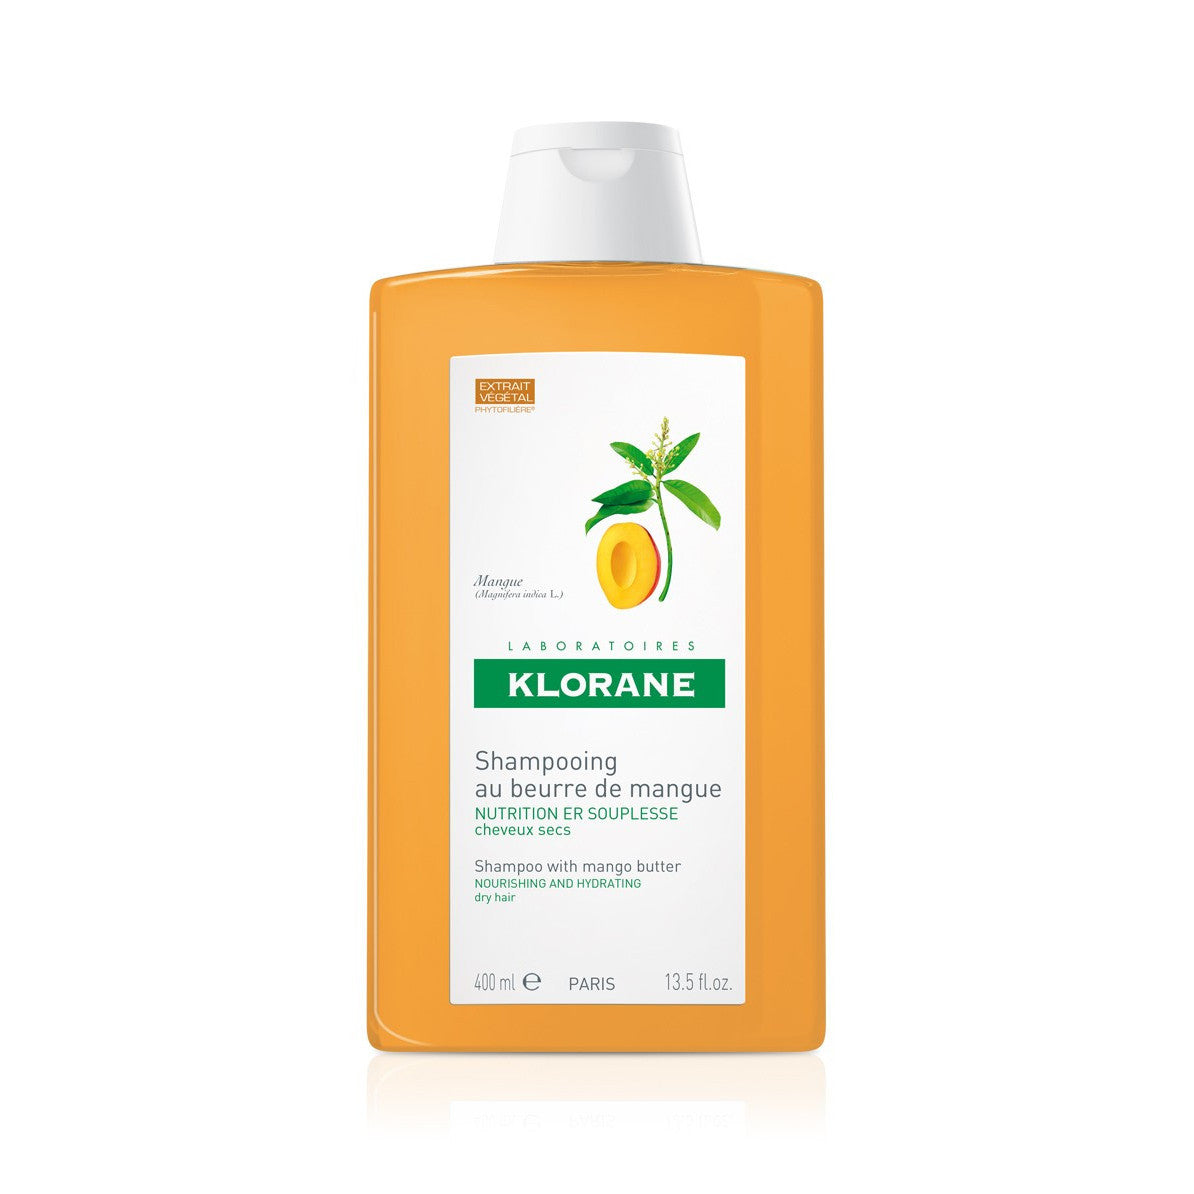 Klorane Shampoo with Mango Butter, Shampoo - New London Pharmacy